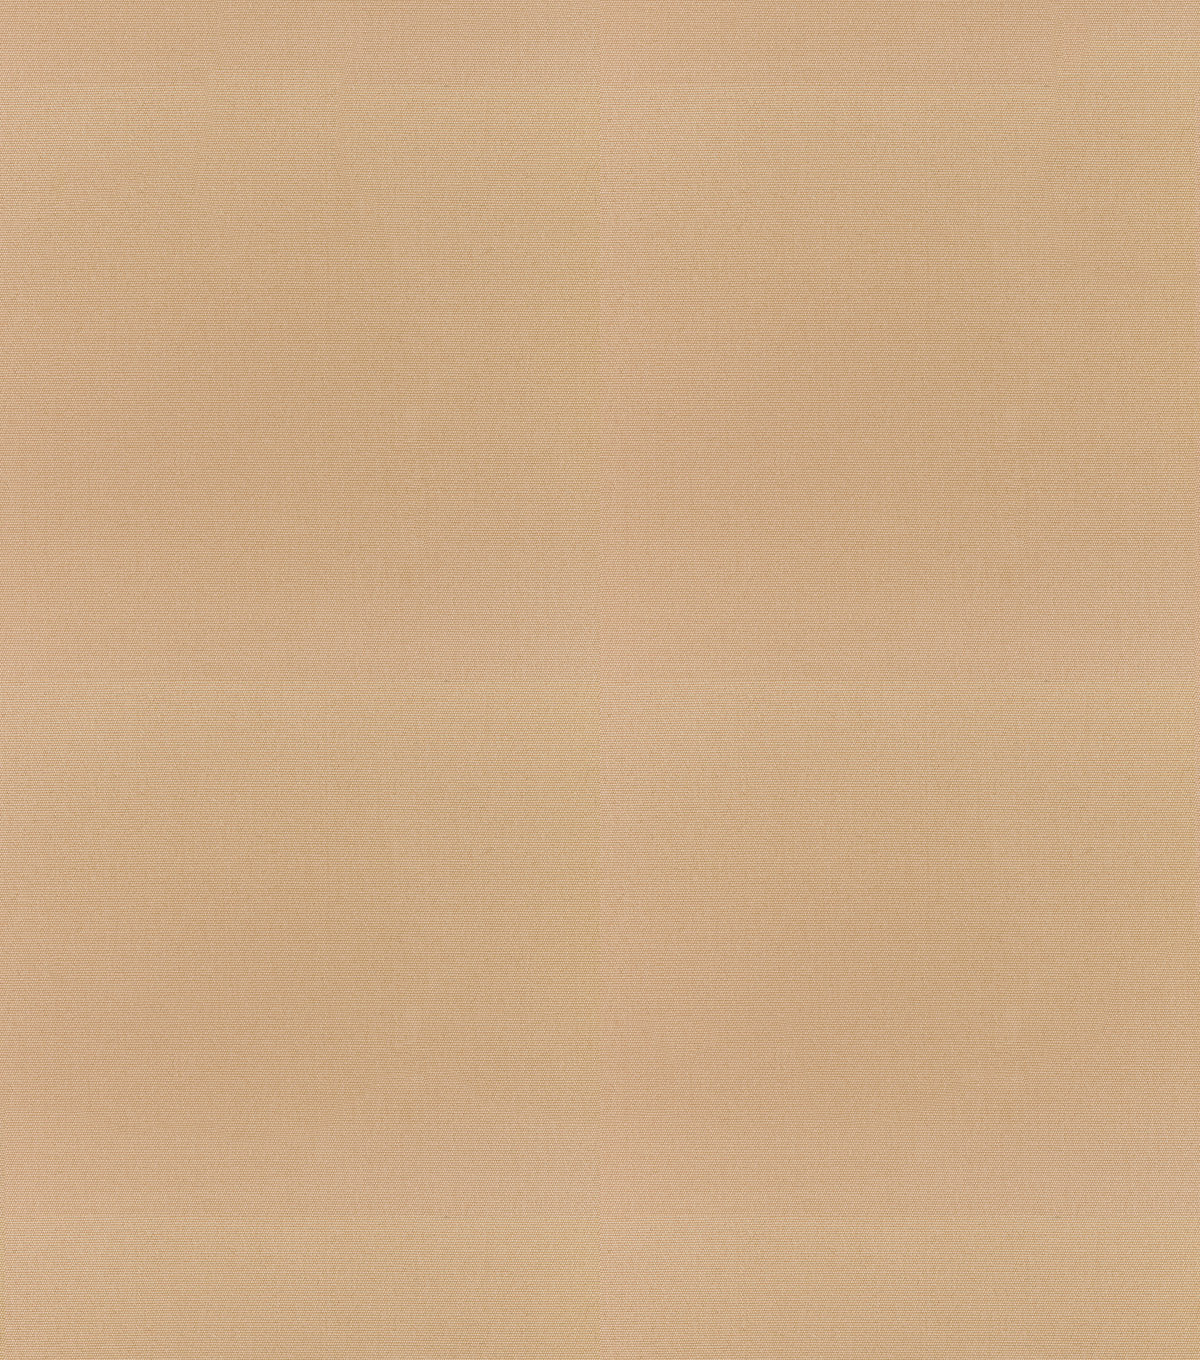 Sunbrella Outdoor Solid Canvas Fabric 54\u0022-Camel